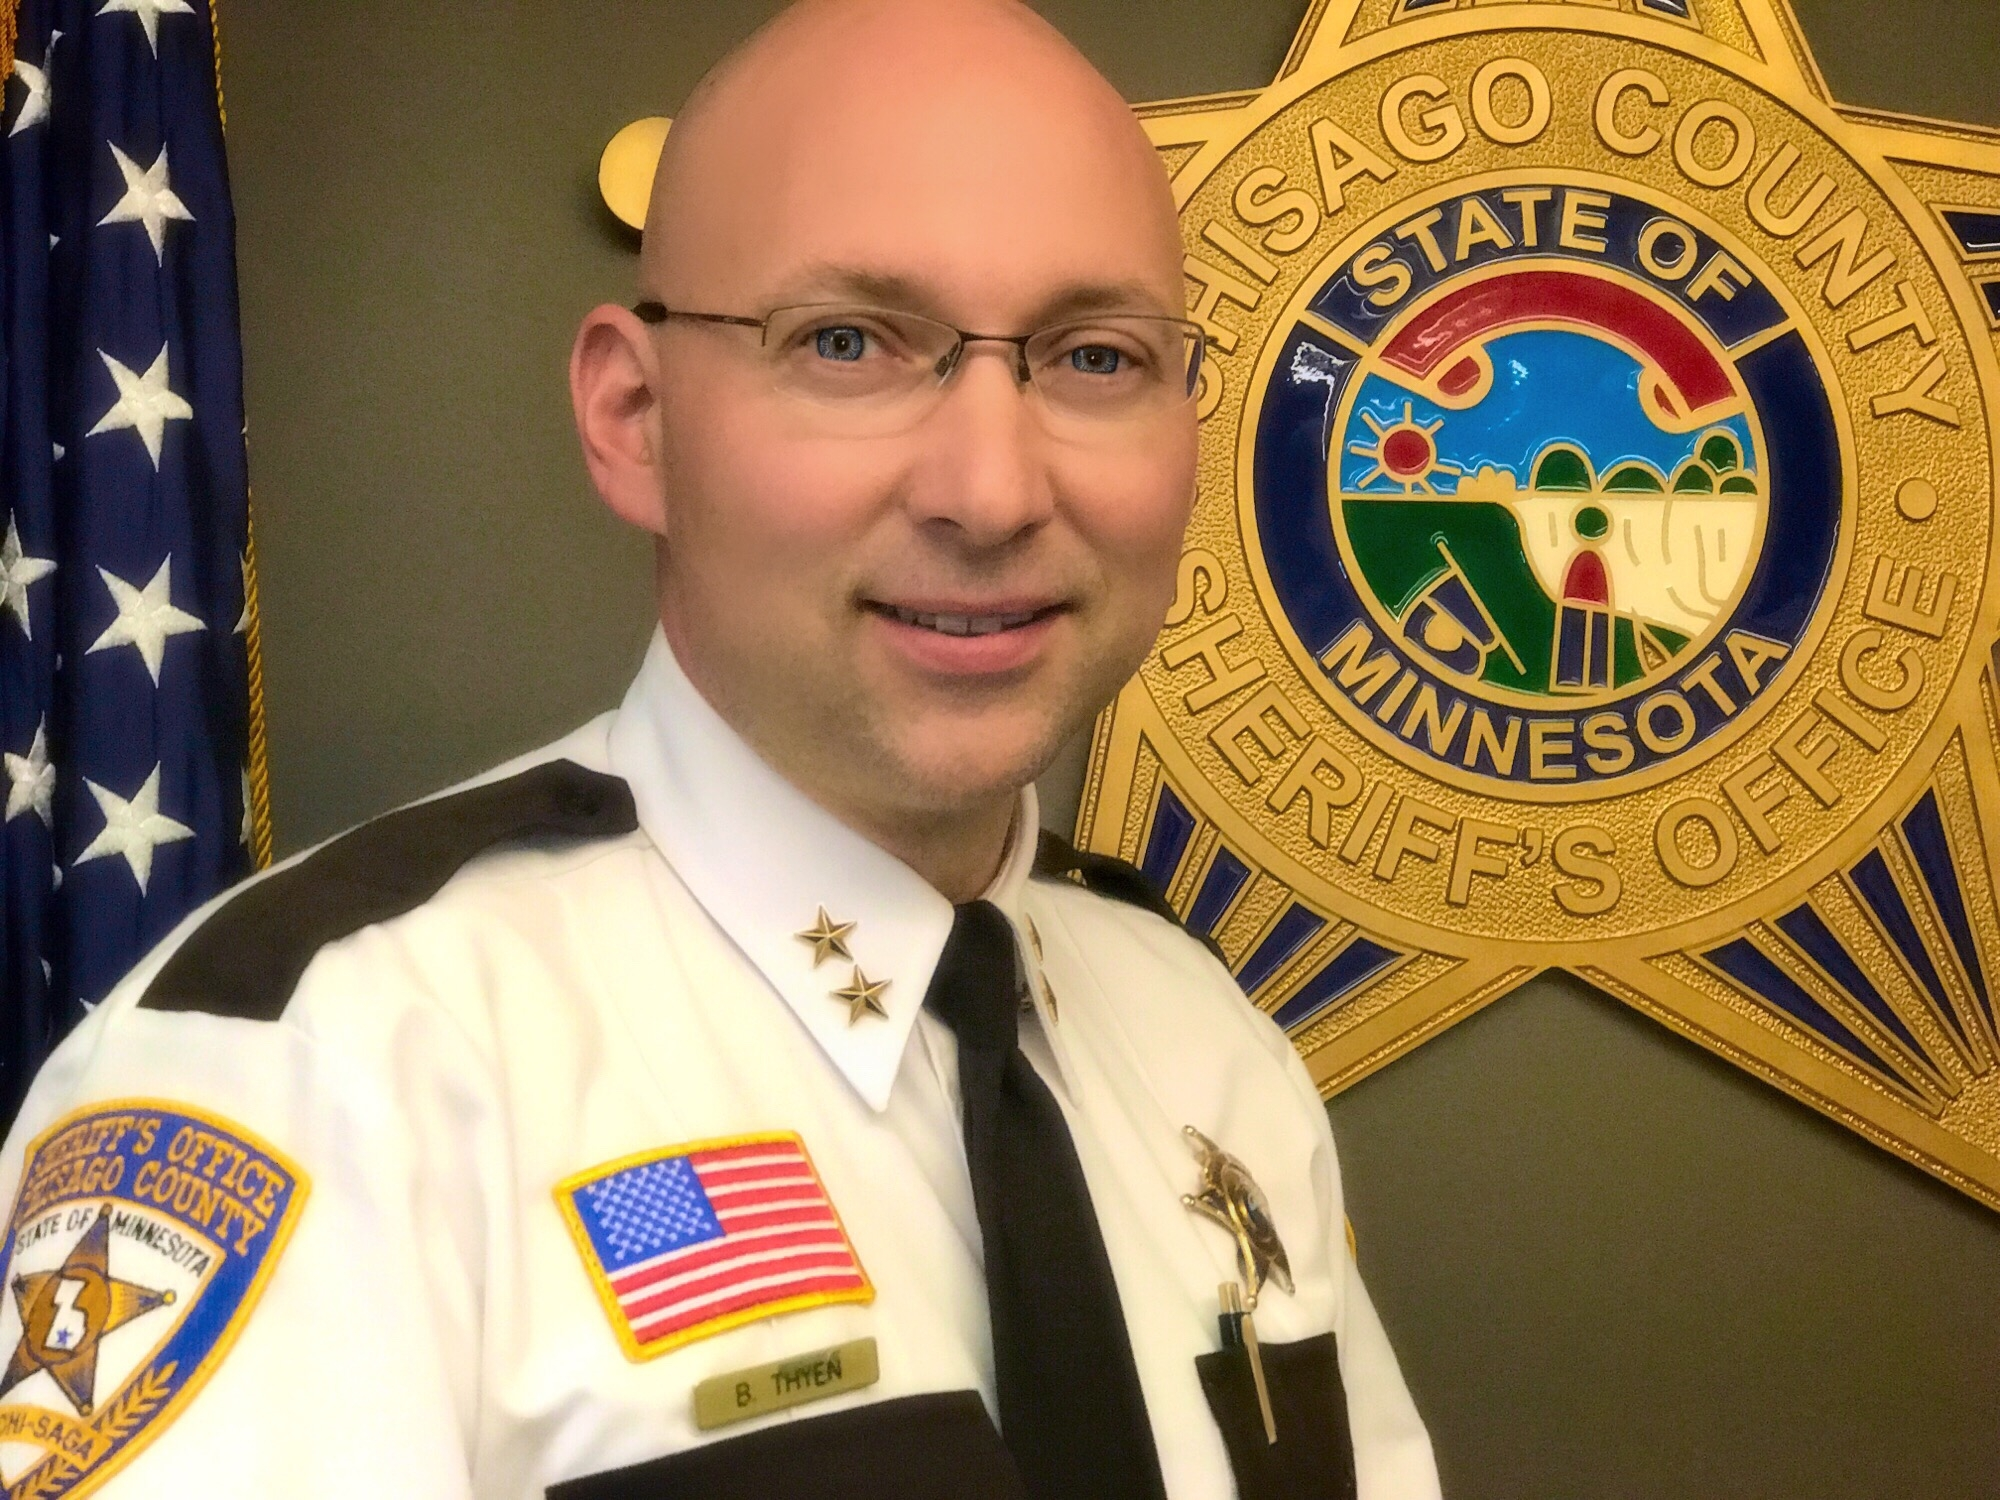 Sheriff Brandon Thyen appointed by county leaders on May 5, 2018.